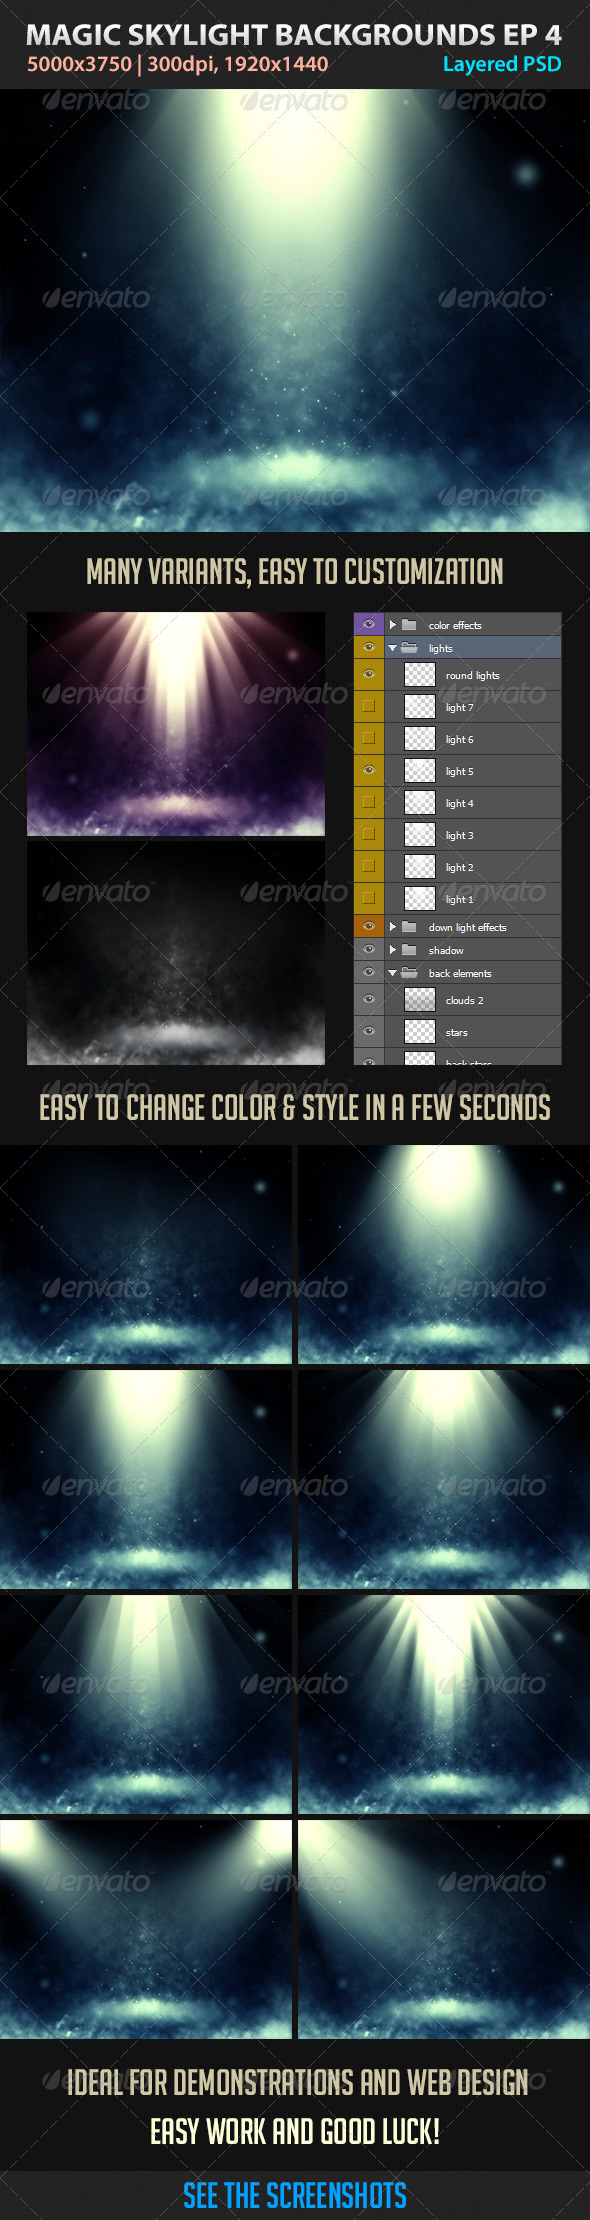 Magic Skylight Backgrounds EP 4 - Abstract Backgrounds